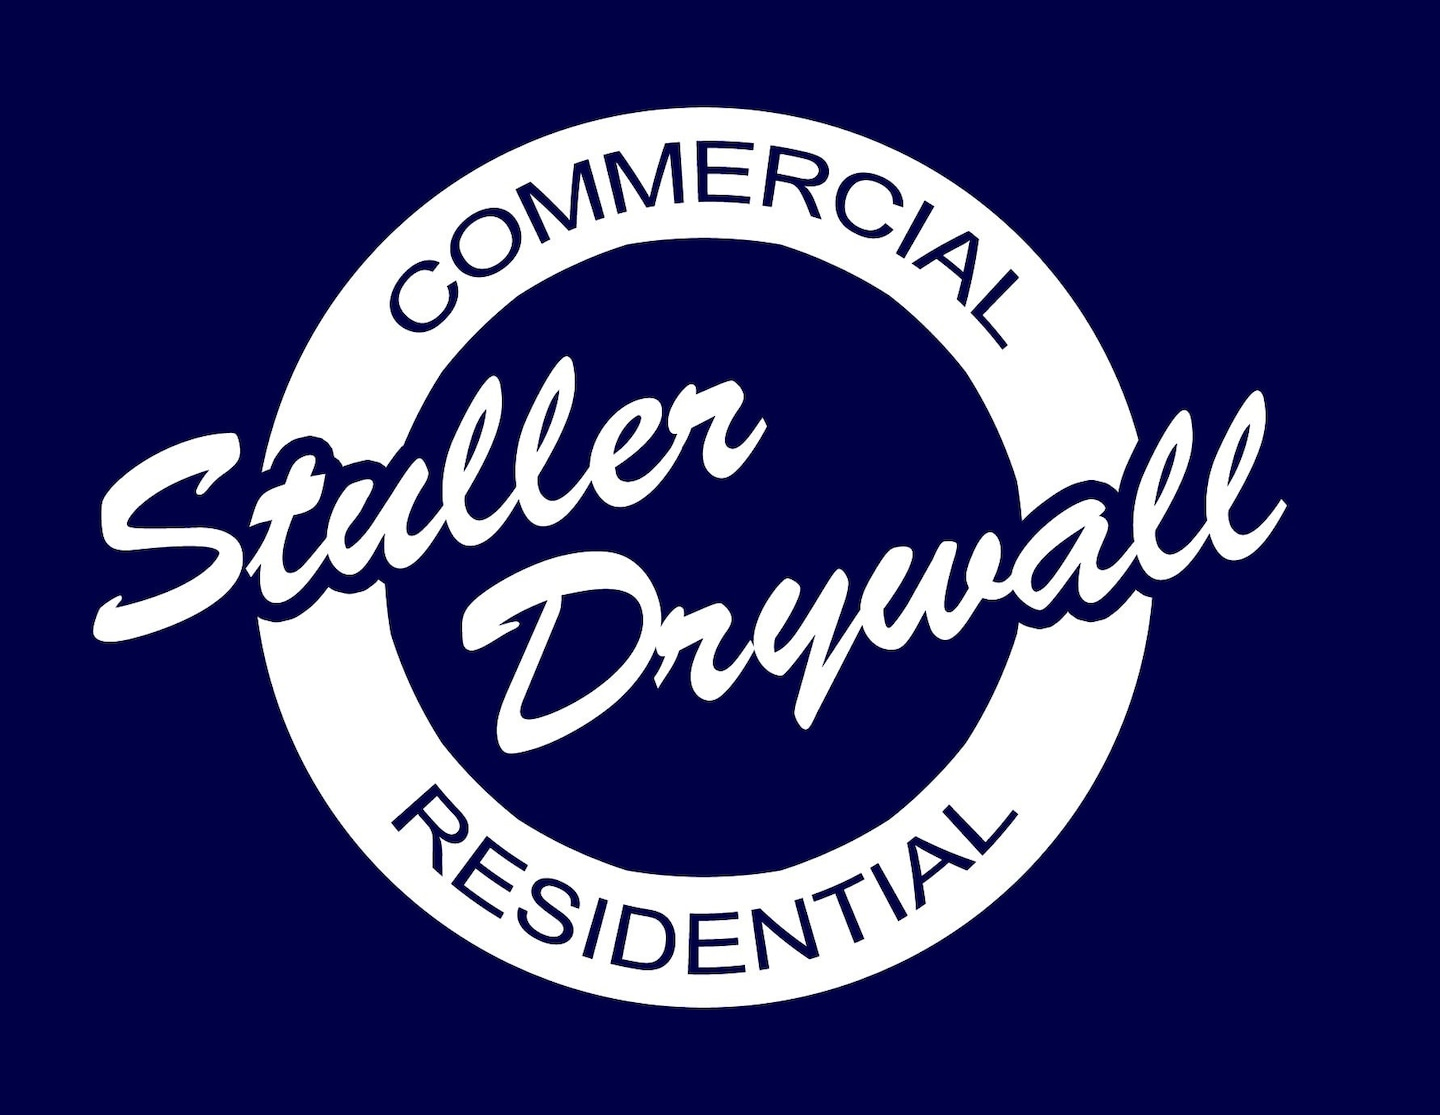 STULLER DRYWALL INC.